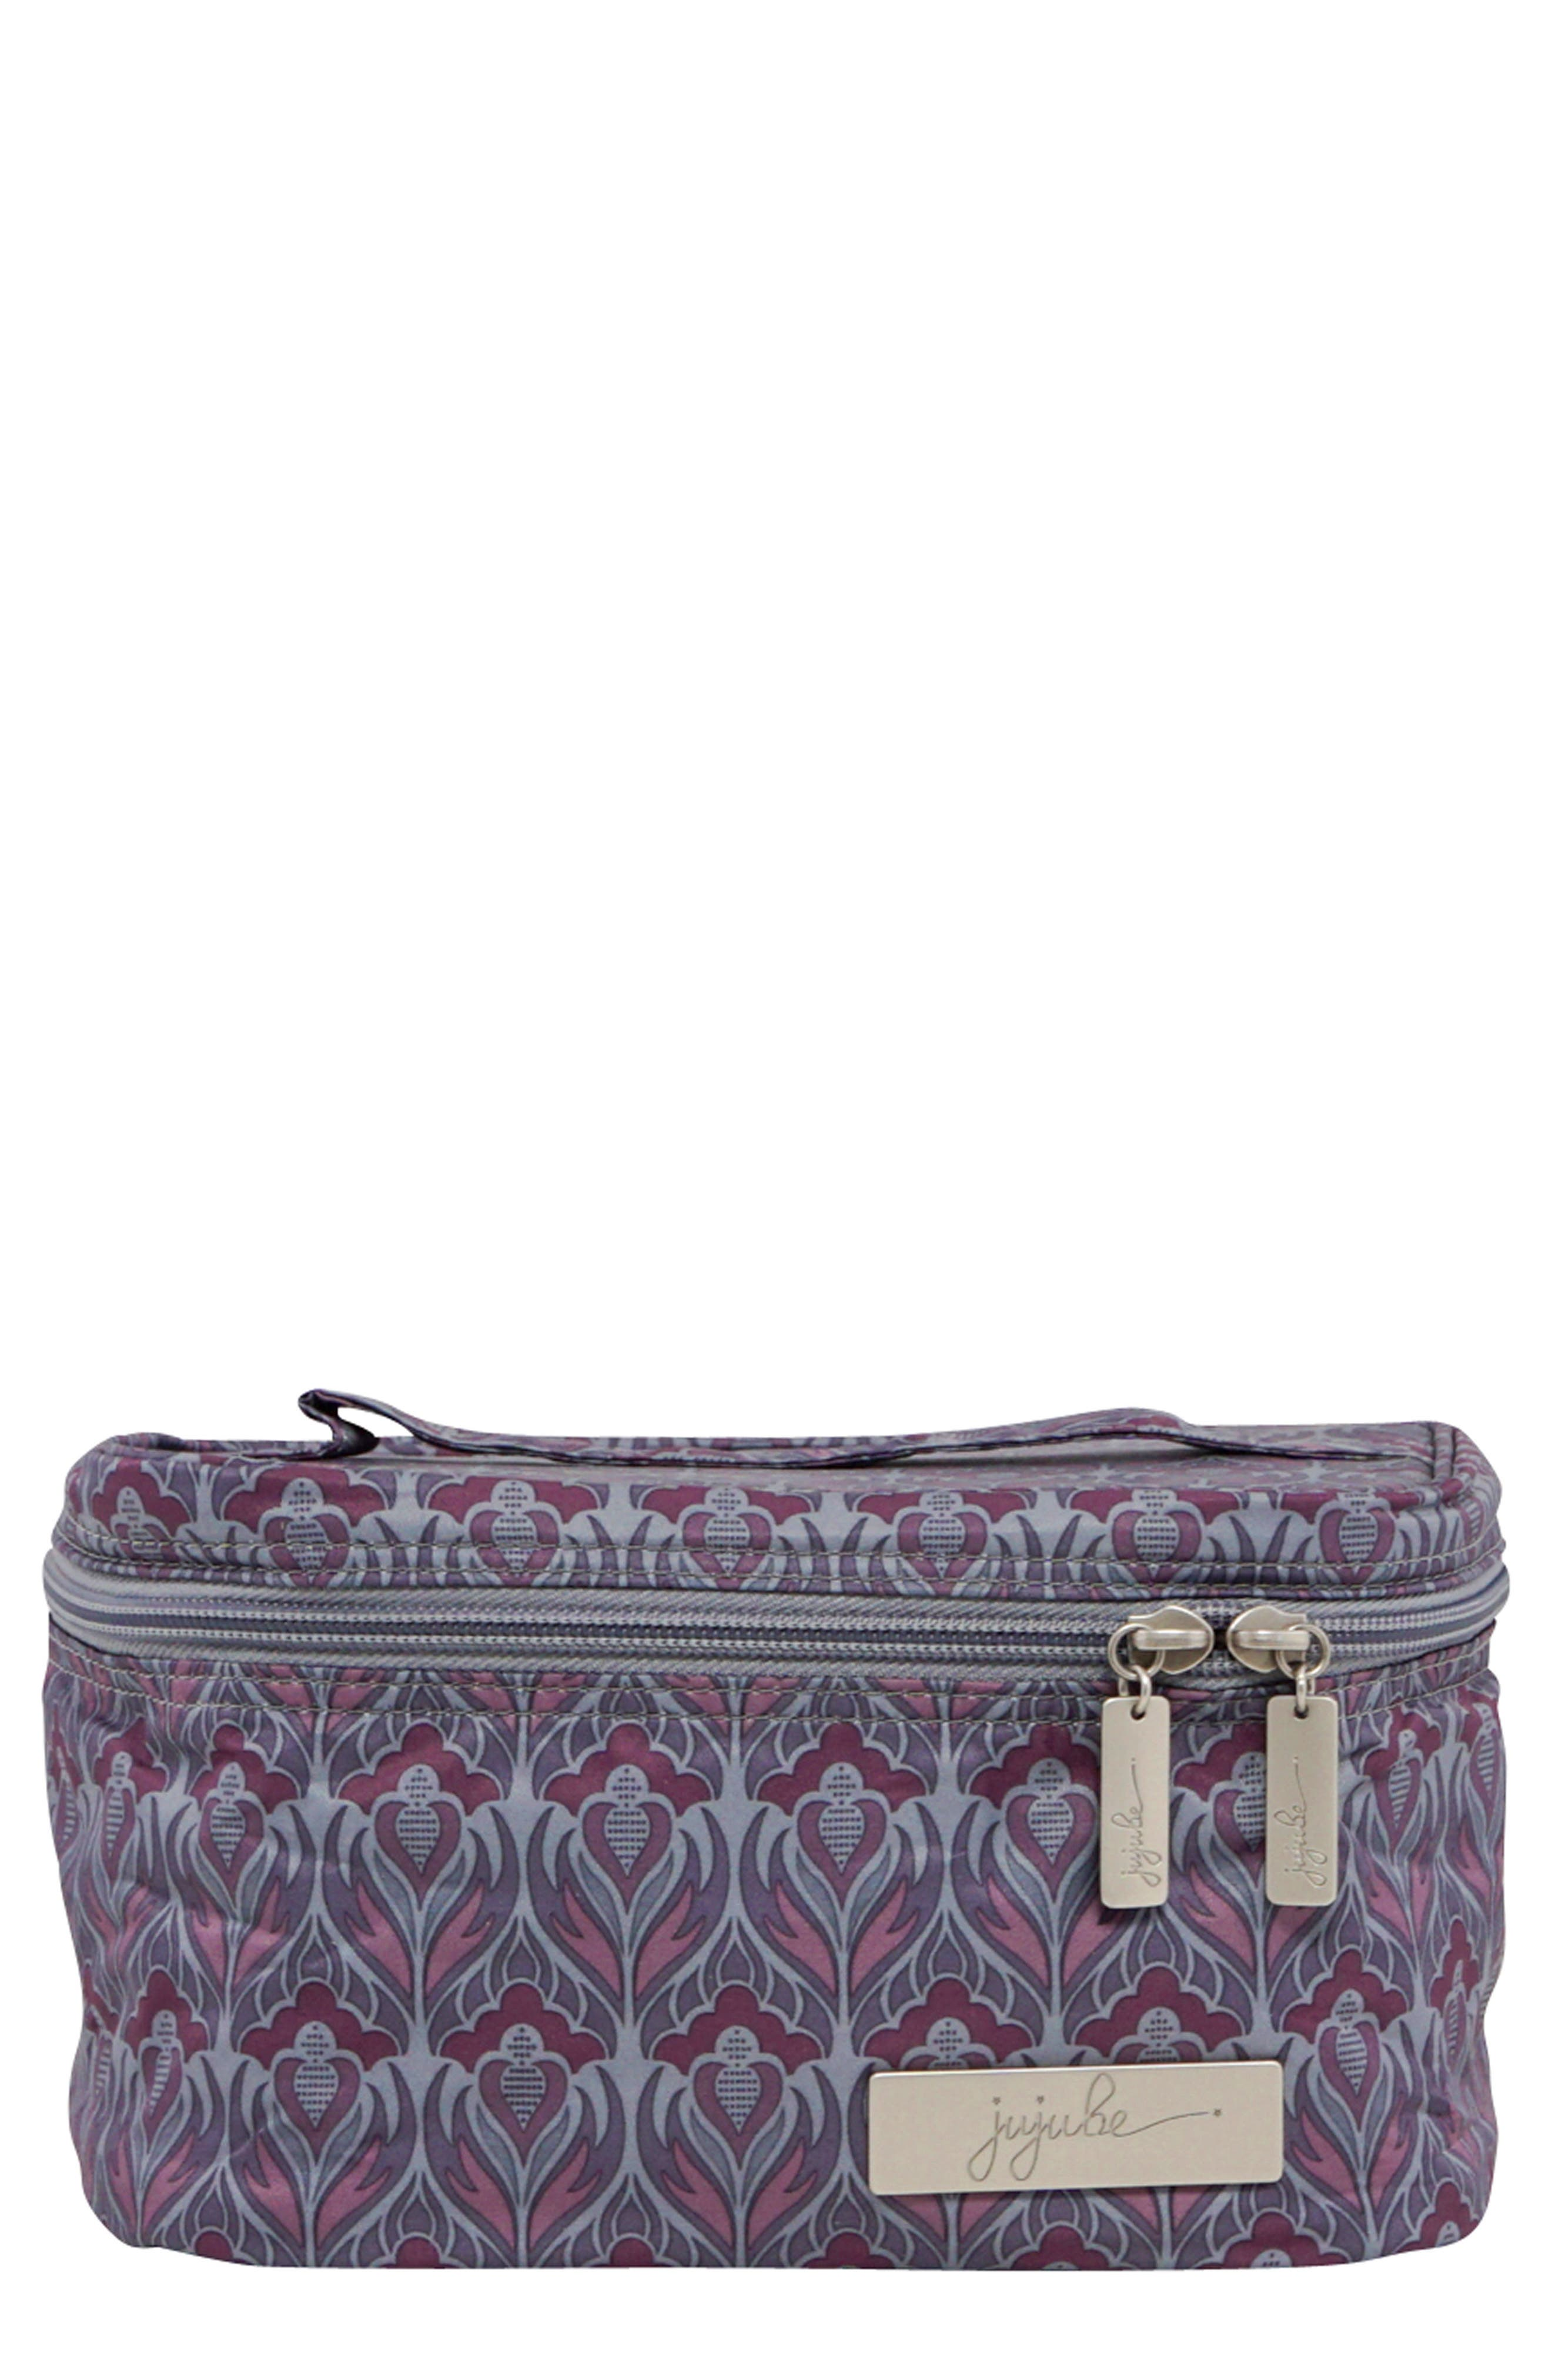 Legacy Be Ready Cosmetics Travel Case,                             Main thumbnail 1, color,                             020